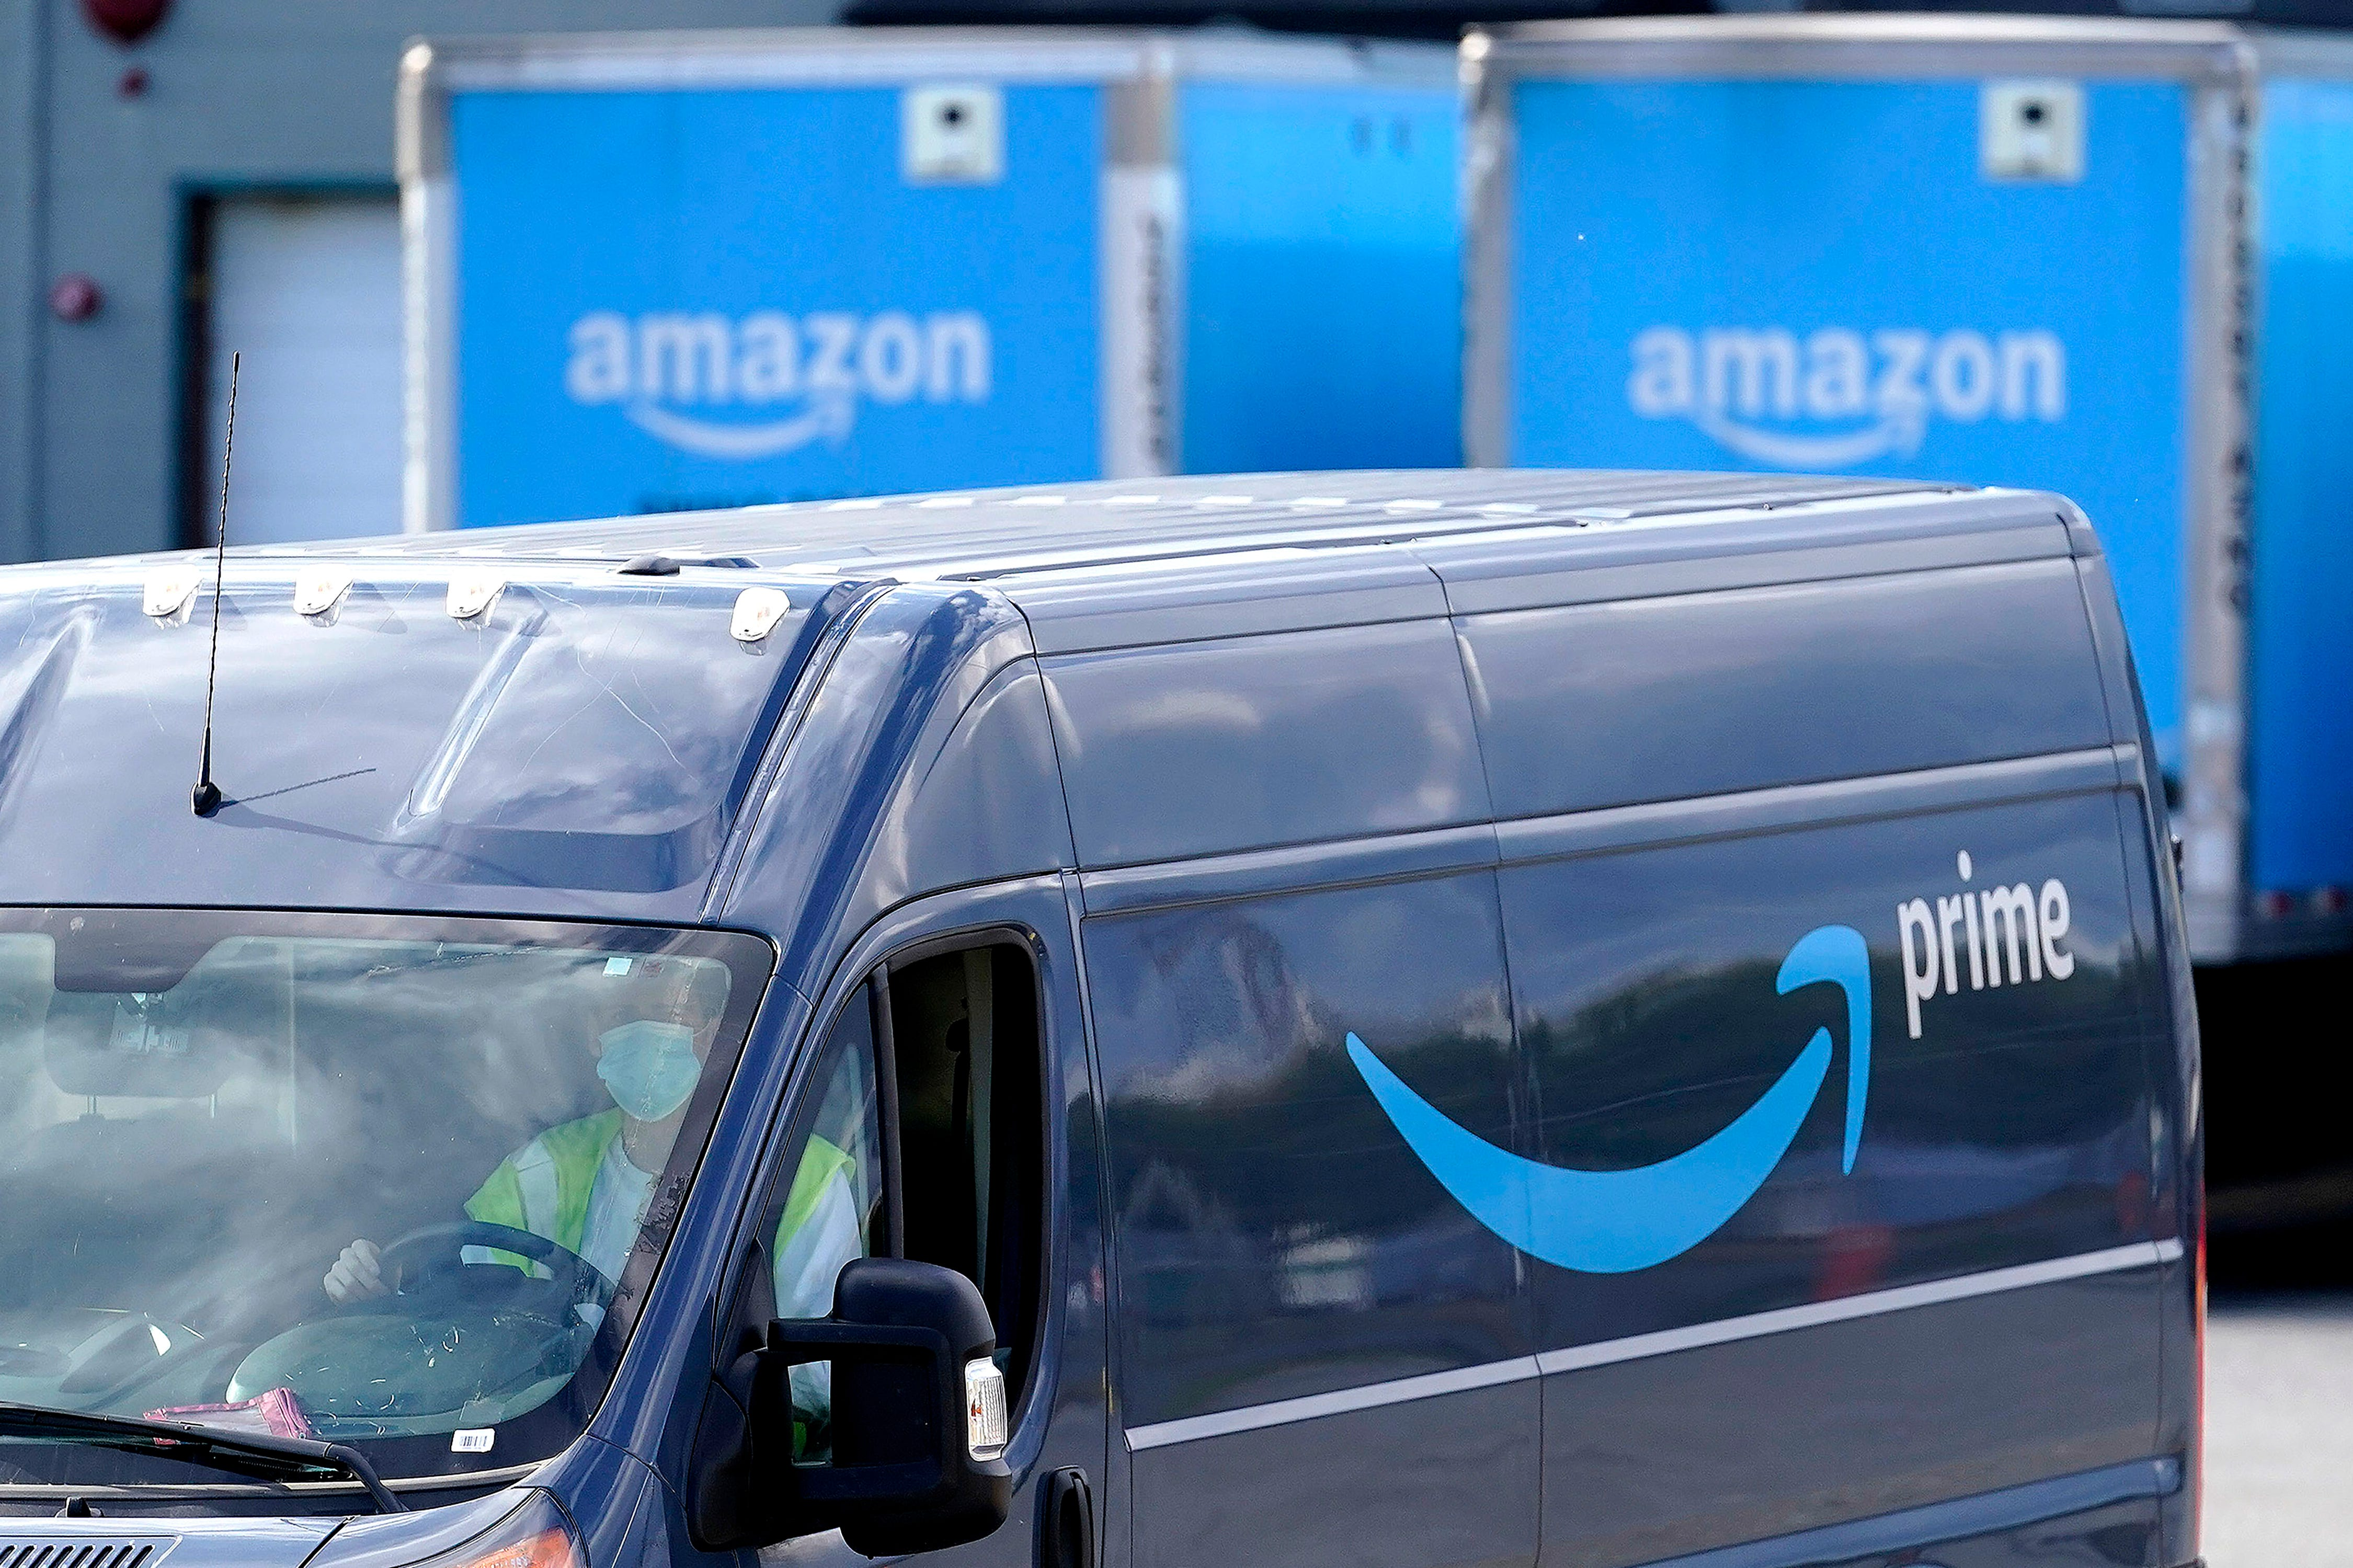 Amazon Prime scam tries to rob you of $800. Here's what to know.